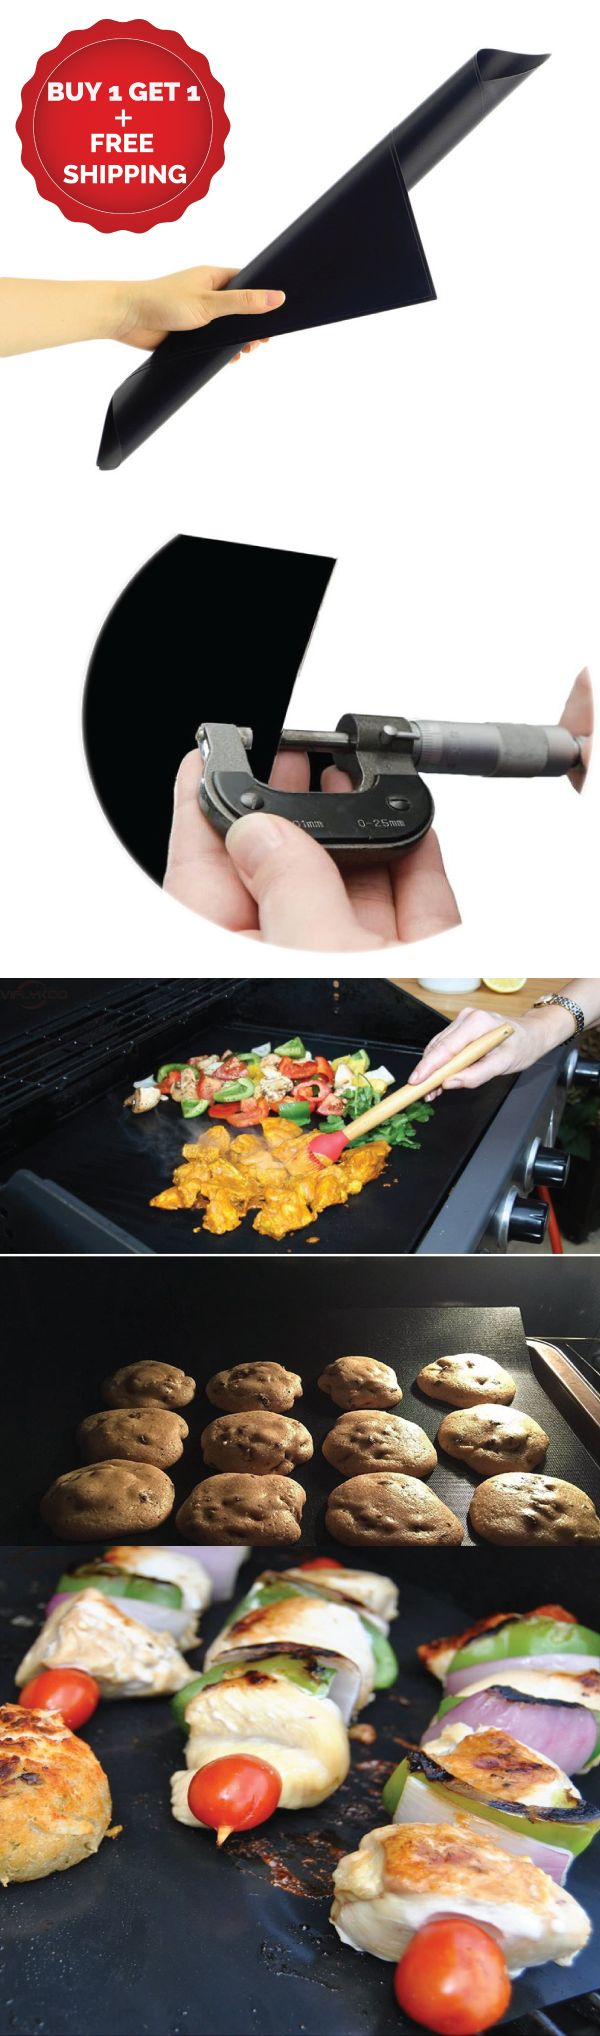 BBQ Grill Mats Nonstick Sheet (Buy1-Get1 Set) They are made from the highest grade non-stick material.  100% PFOA free premium FDA approved PTFE coating just like your favorite nonstick pan. They are specially designed to cook your food evenly in temperatures up to 500°F. Easily cut the BBQ sheets to any size or shape to fit your needs. Use as a cooking sheet, vegetable basket, aluminum foil pan liner, baking sheet, microwave liner, drip catcher, camp grill, and of course a grilling mat.